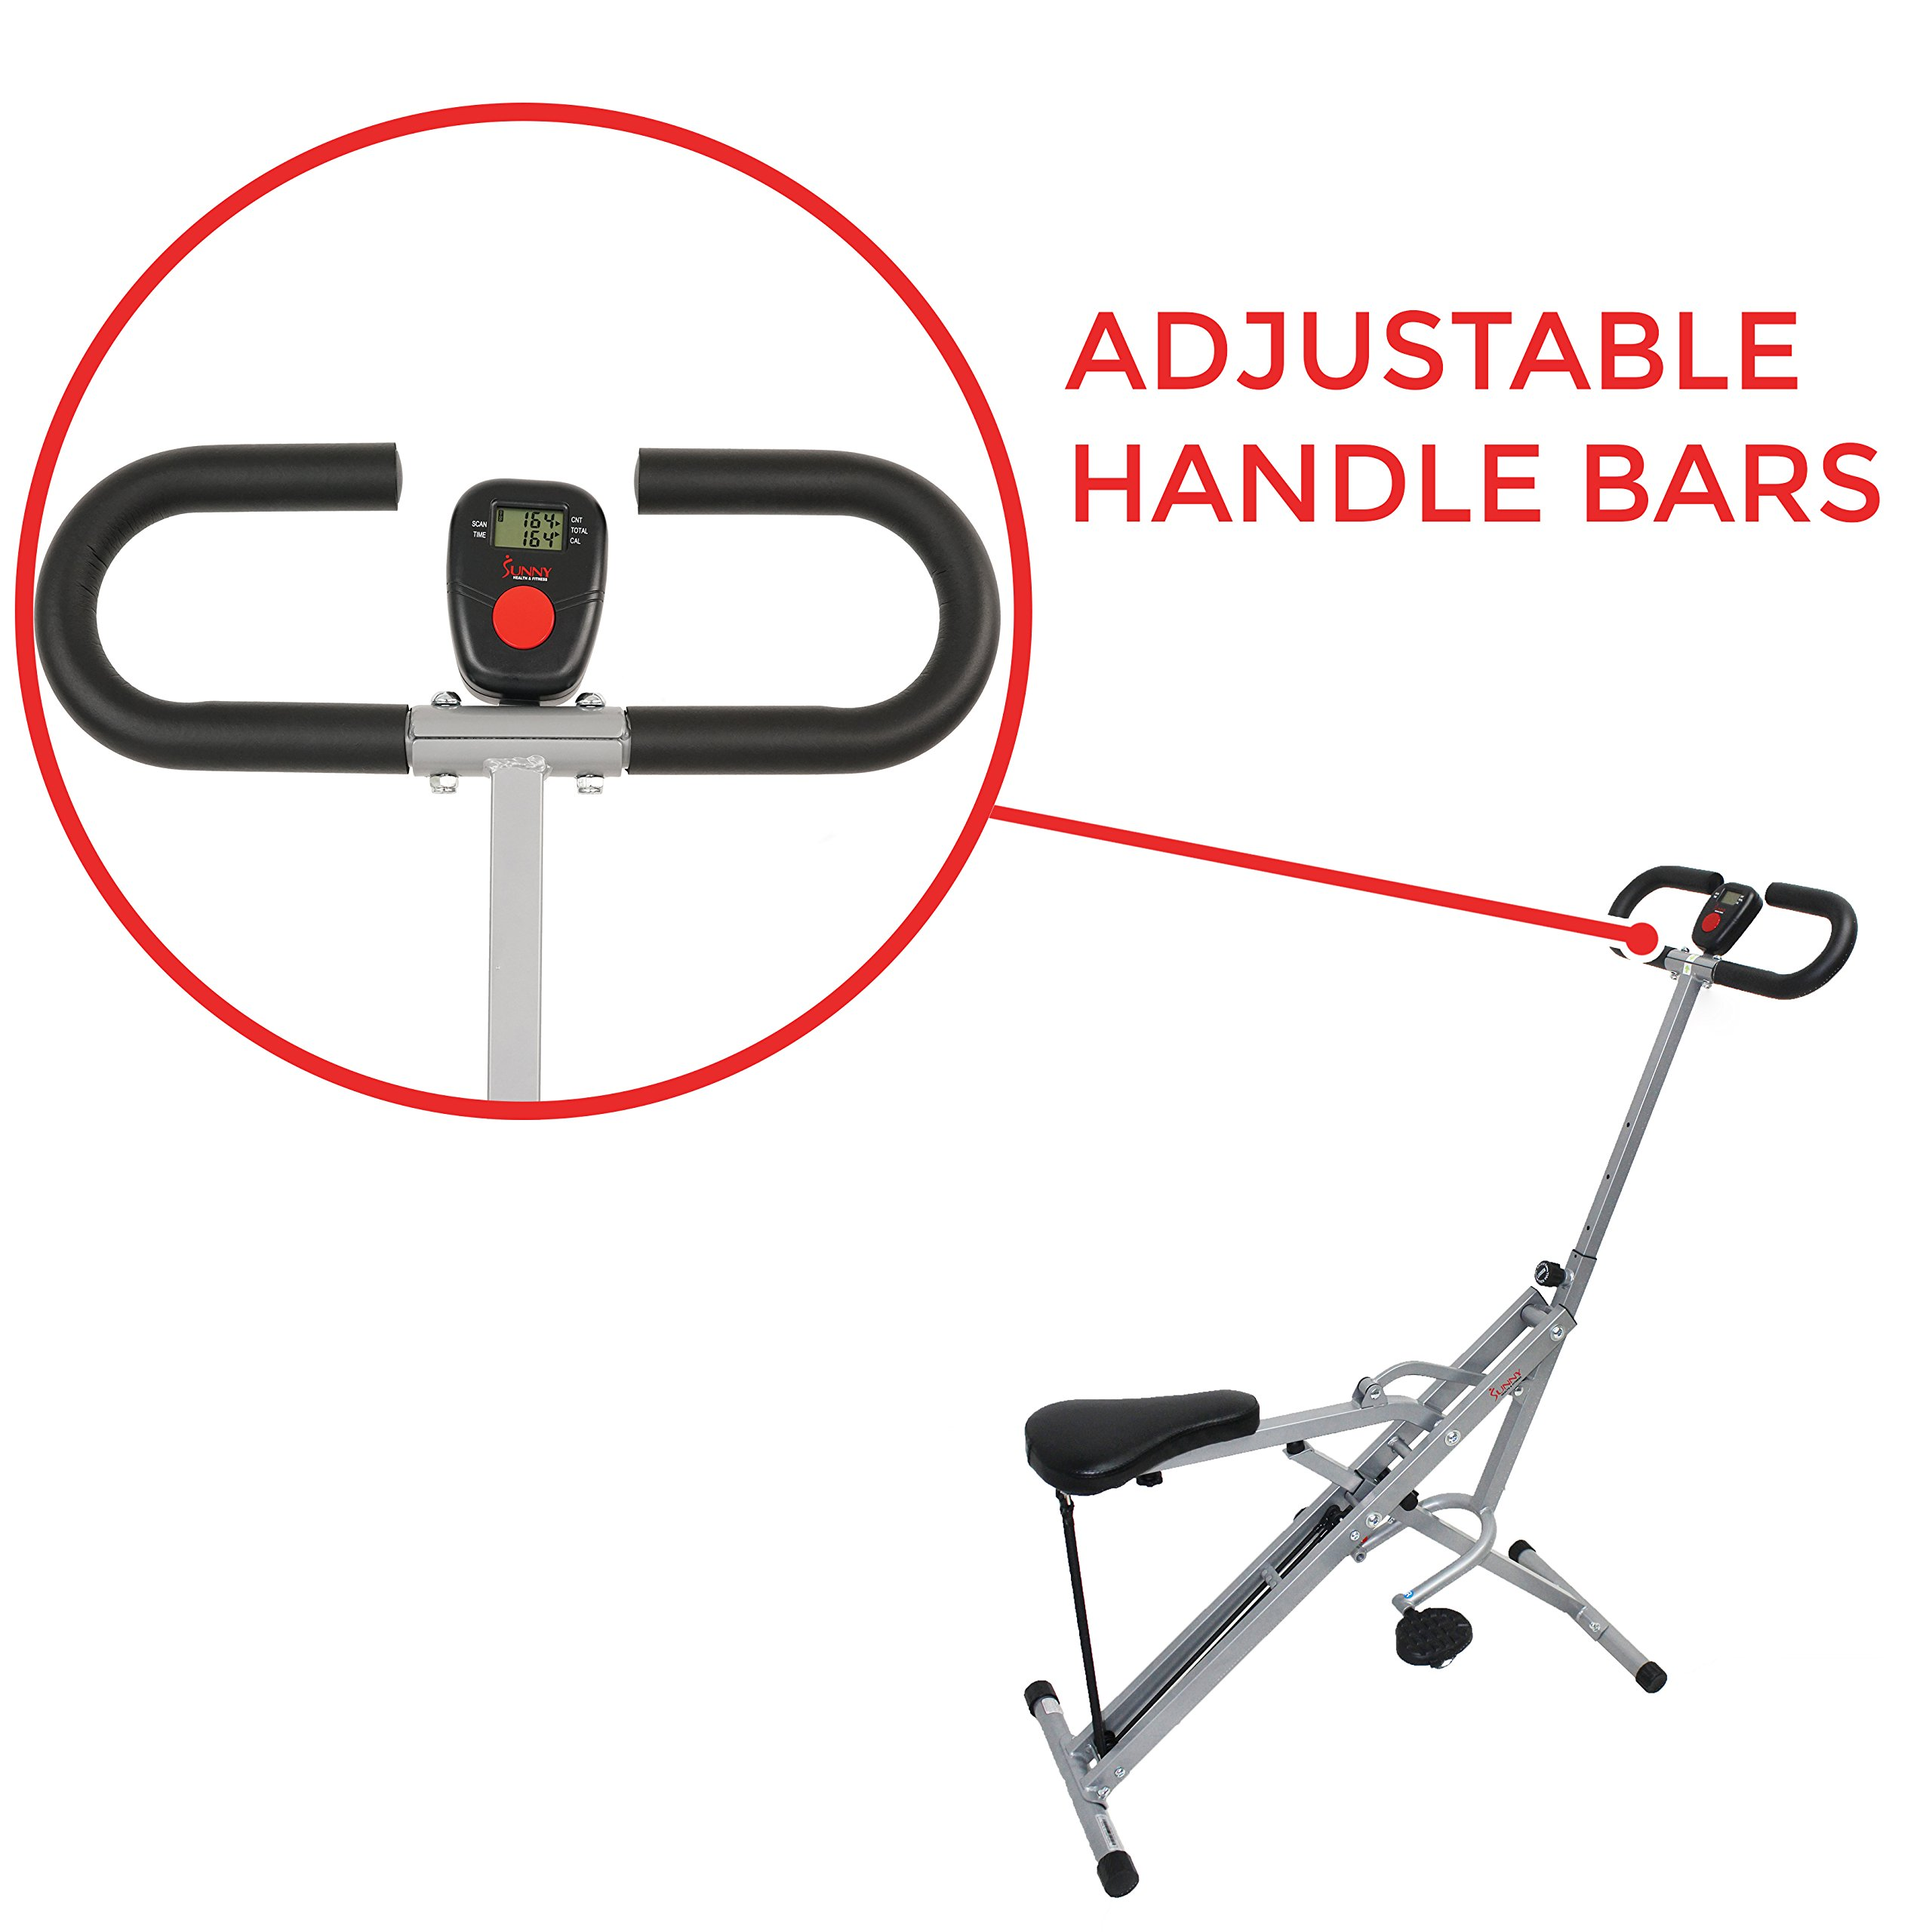 Sunny Health & Fitness Squat Assist Row-N-Ride Trainer for Squat Exercise and Glutes Workout by Sunny Health & Fitness (Image #6)